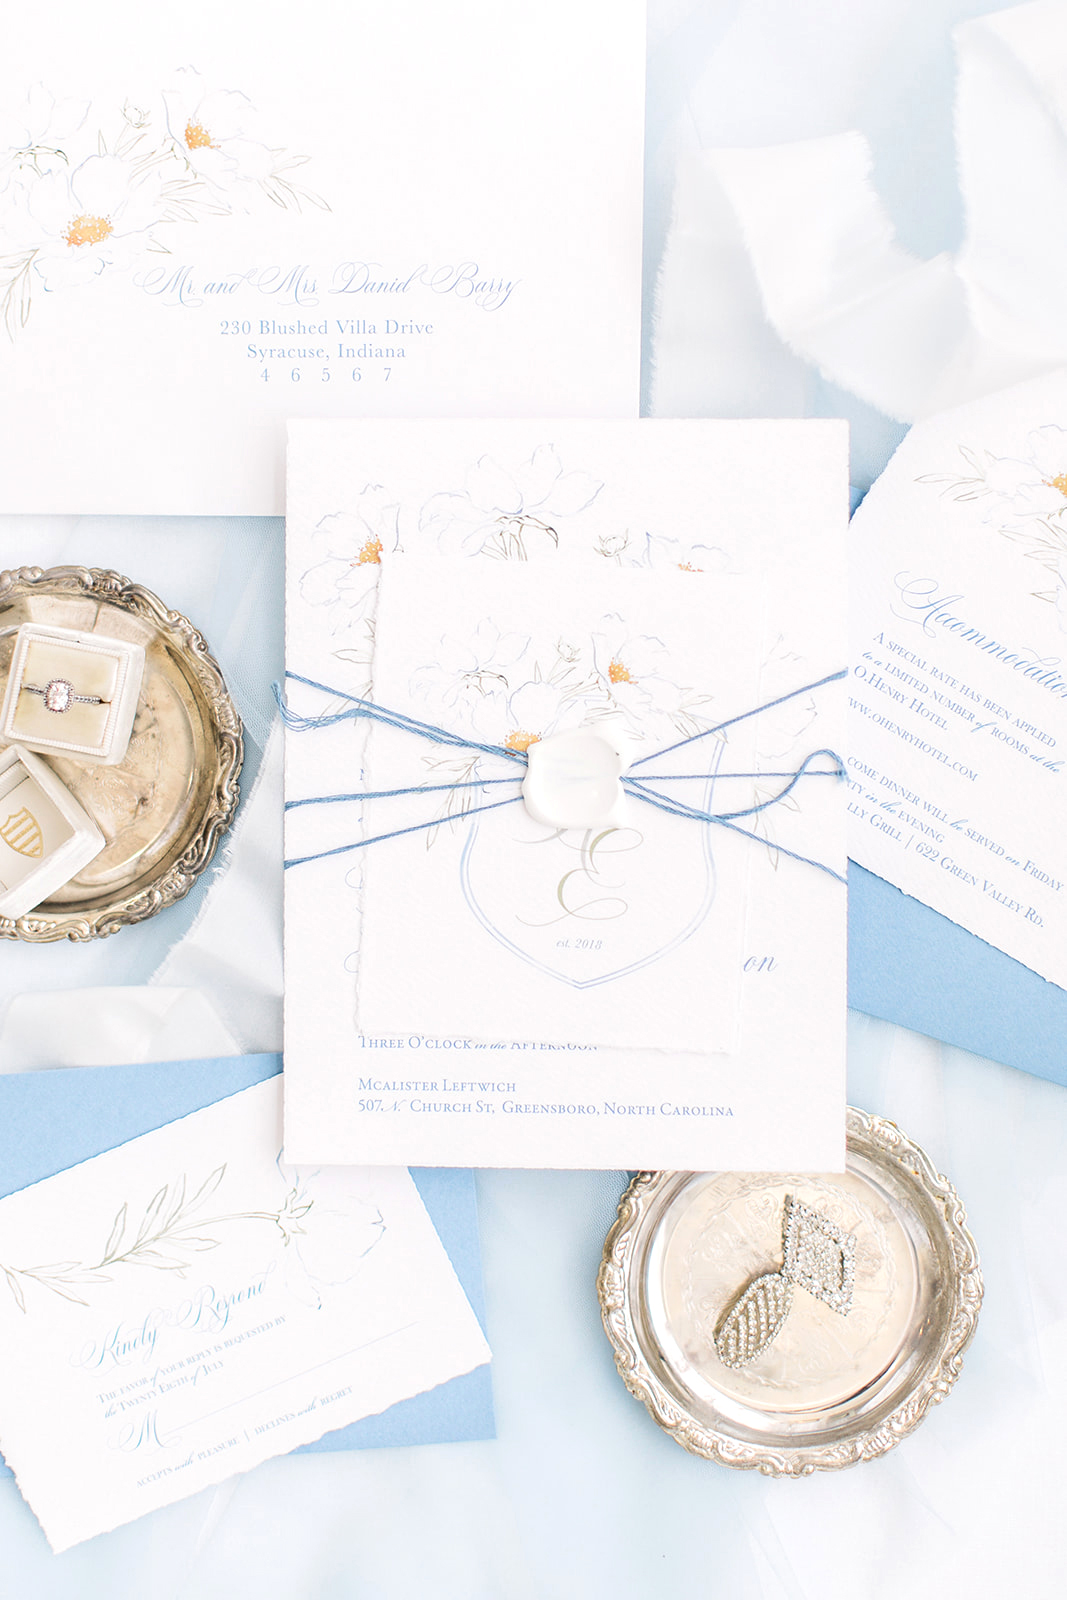 Blank seal with blue cord wrapped invitation. Fine Art, Ethereal wedding staitonery with a fresh twist.  Bolder color and some modern florals bring fresh life to your wedding stationery.  Blushed Design: Wedding Invitations and FIne ARt Portraits